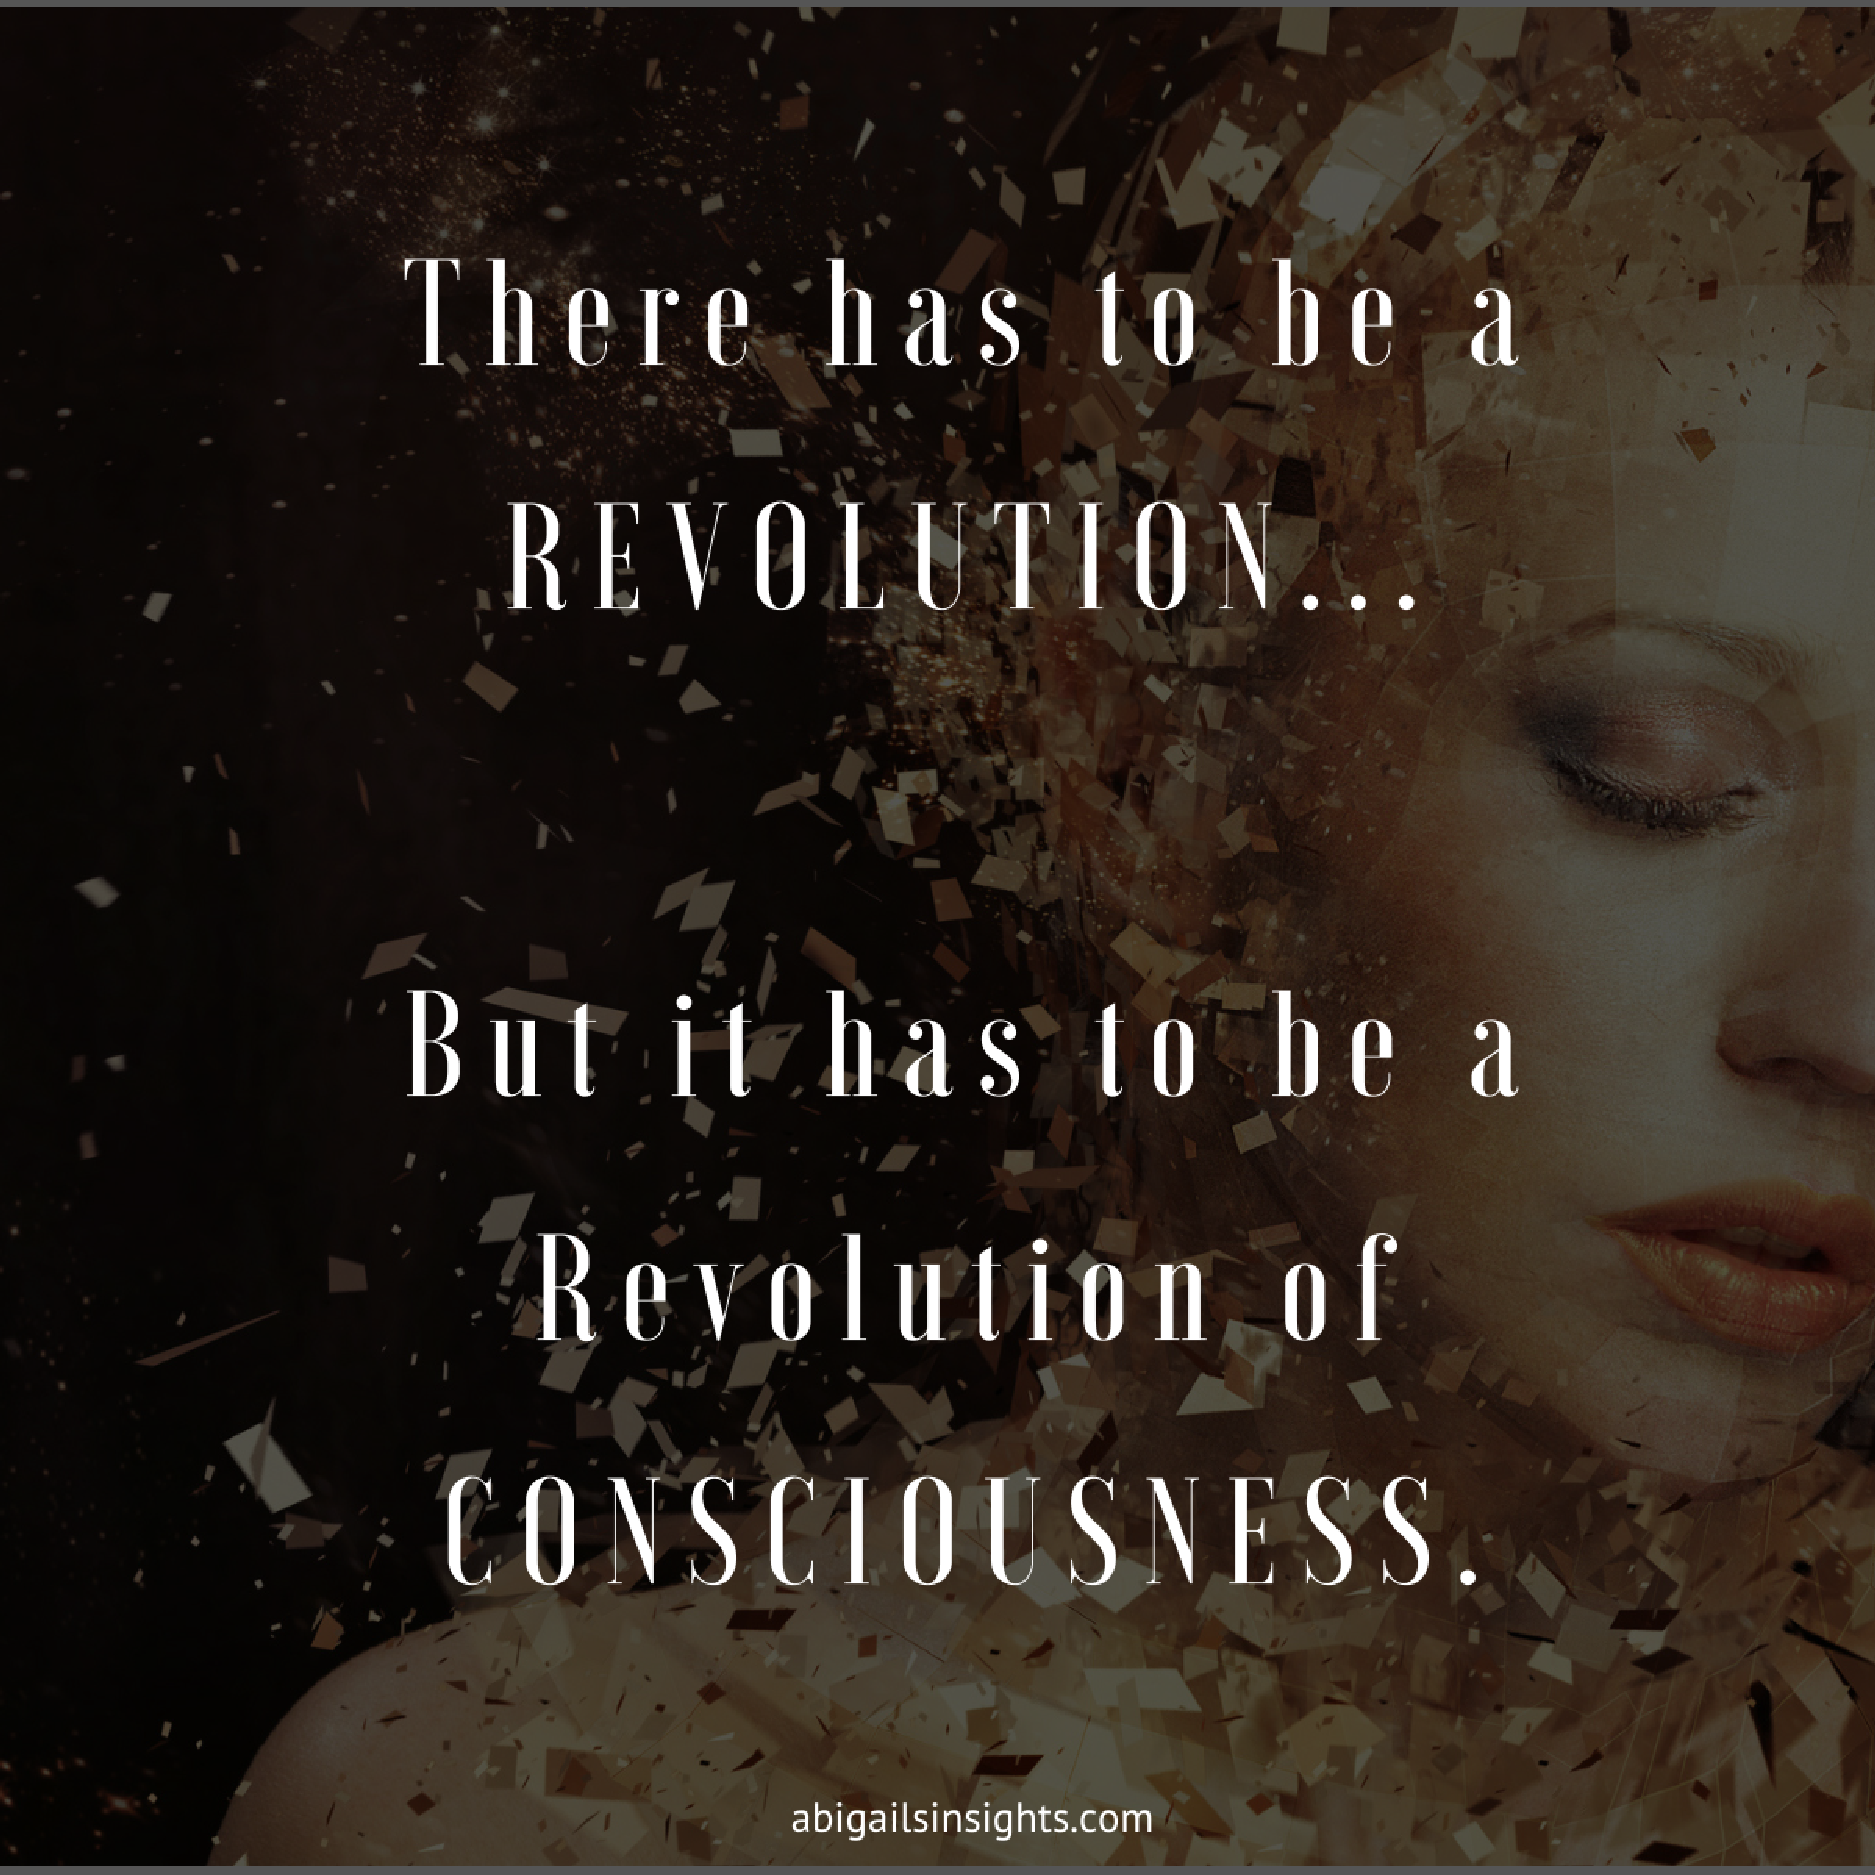 There has to be a revolution a revolution of consciousness